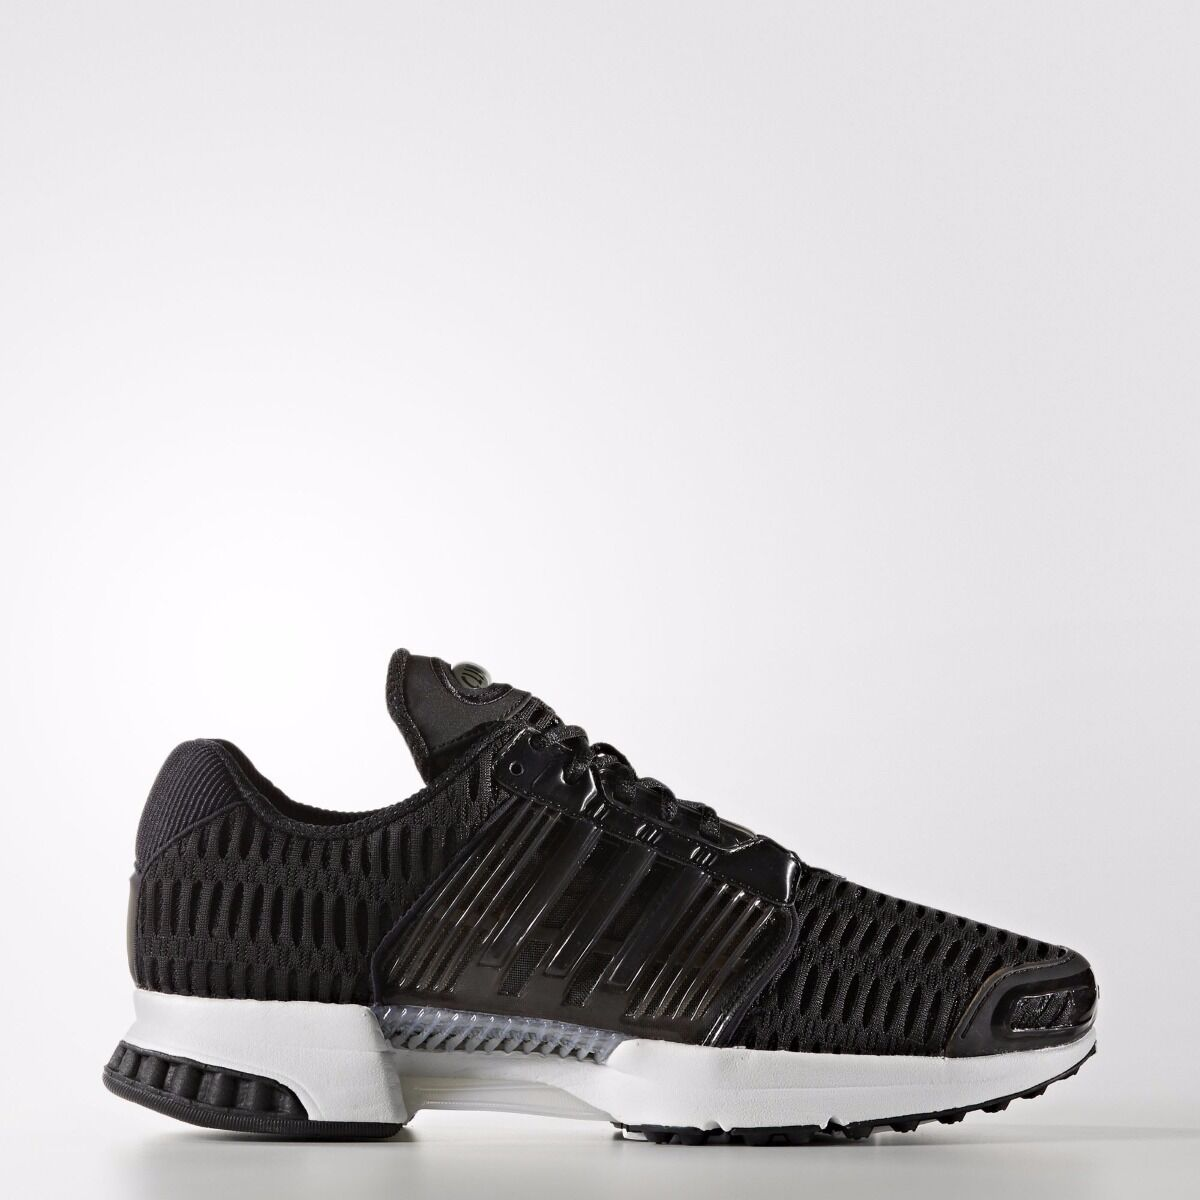 ADIDAS CLIMA COOL 1 femmes COURIR Chaussures 4.5 tennis taille 3.5 4 4.5 Chaussures 5 6 NEUF 6bfeb8